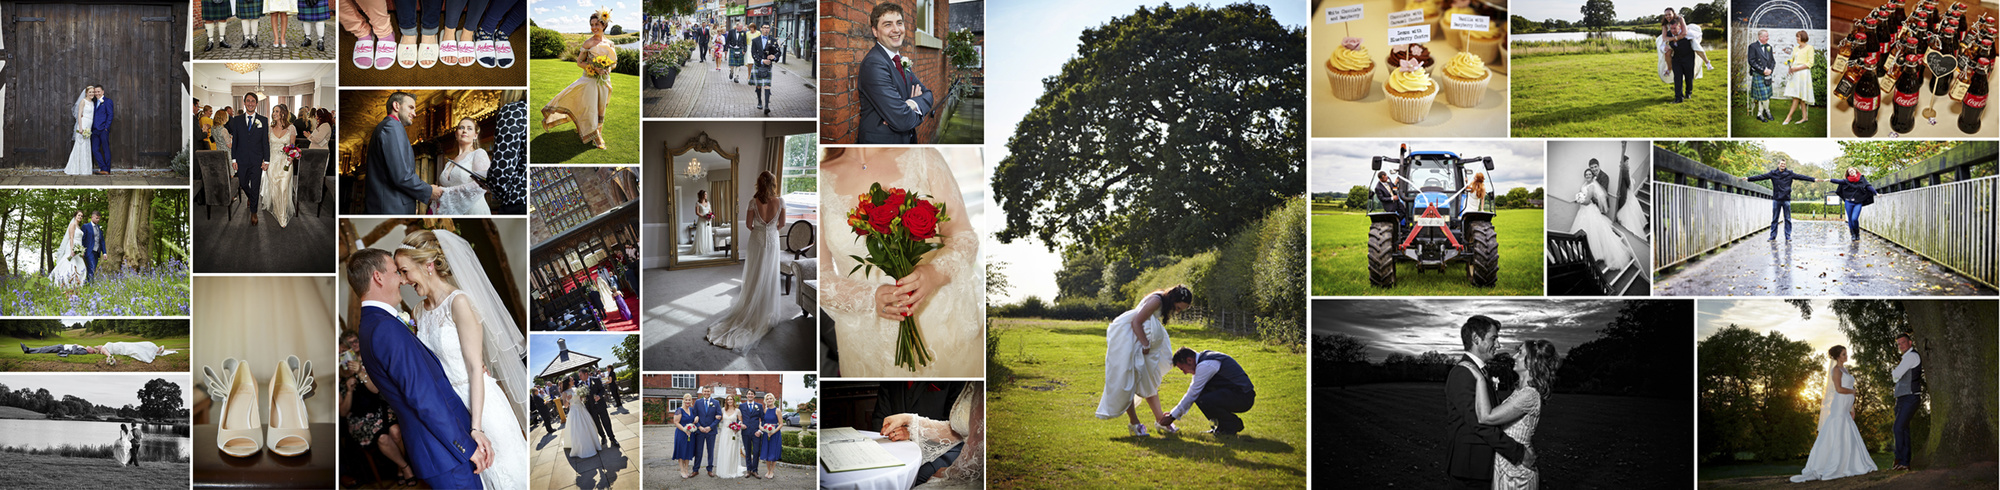 Wedding Photography in Cheshire.